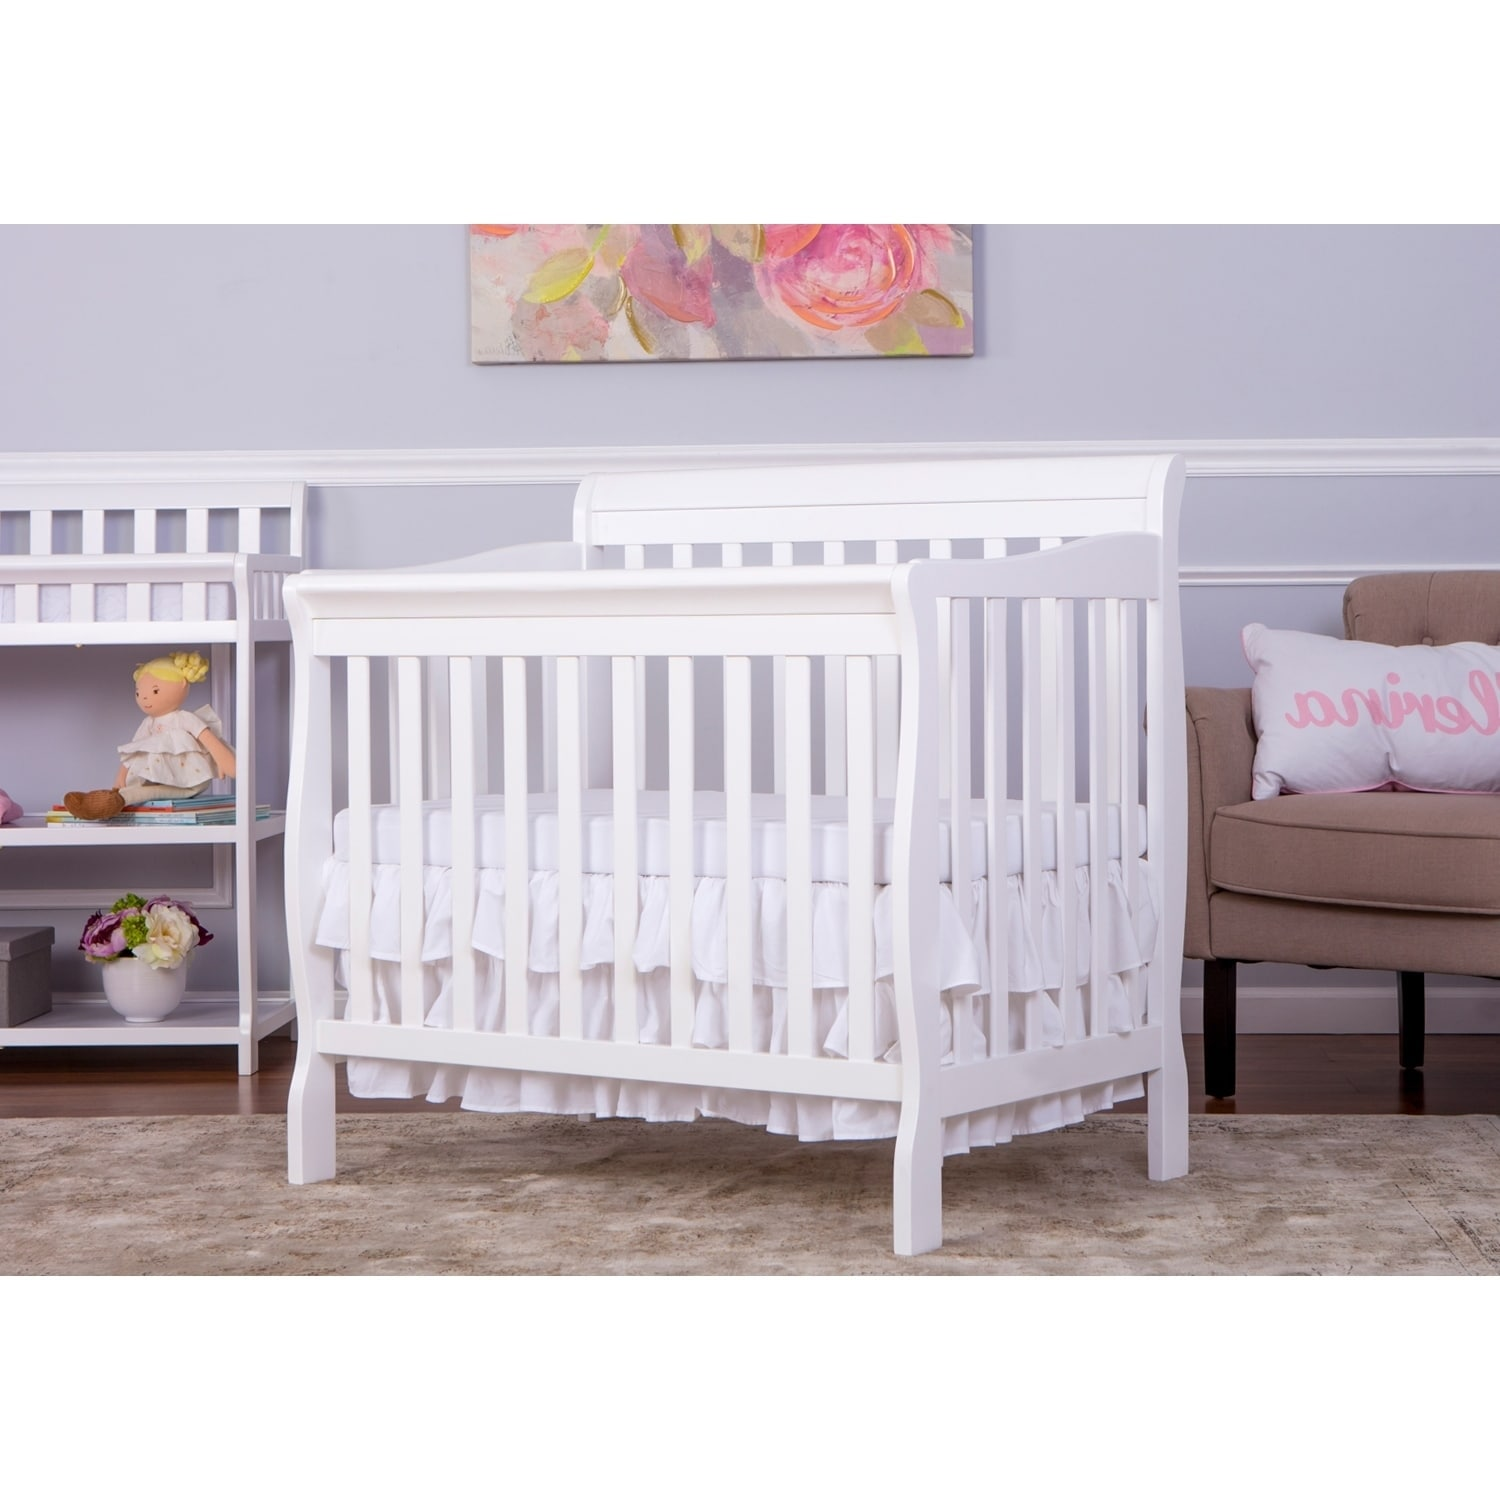 of will crib mini stylish pin baby convertible frzqnc these cribs fit best cute space hello bestof your minicribs